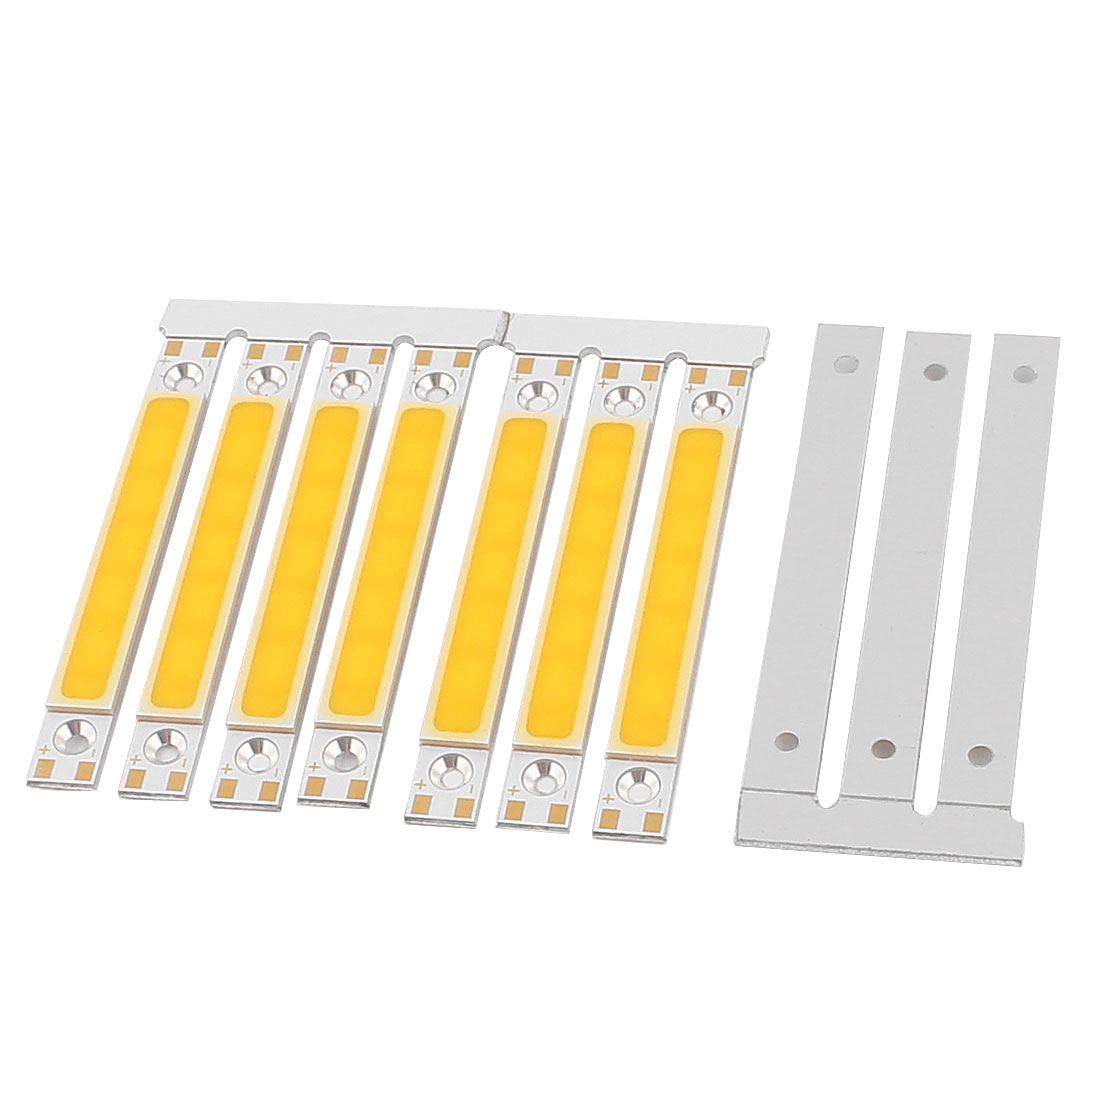 6W DC9-11V 300mA 80-90LM/W Warm White LED Light COB Lamp Bead Chip 10pcs